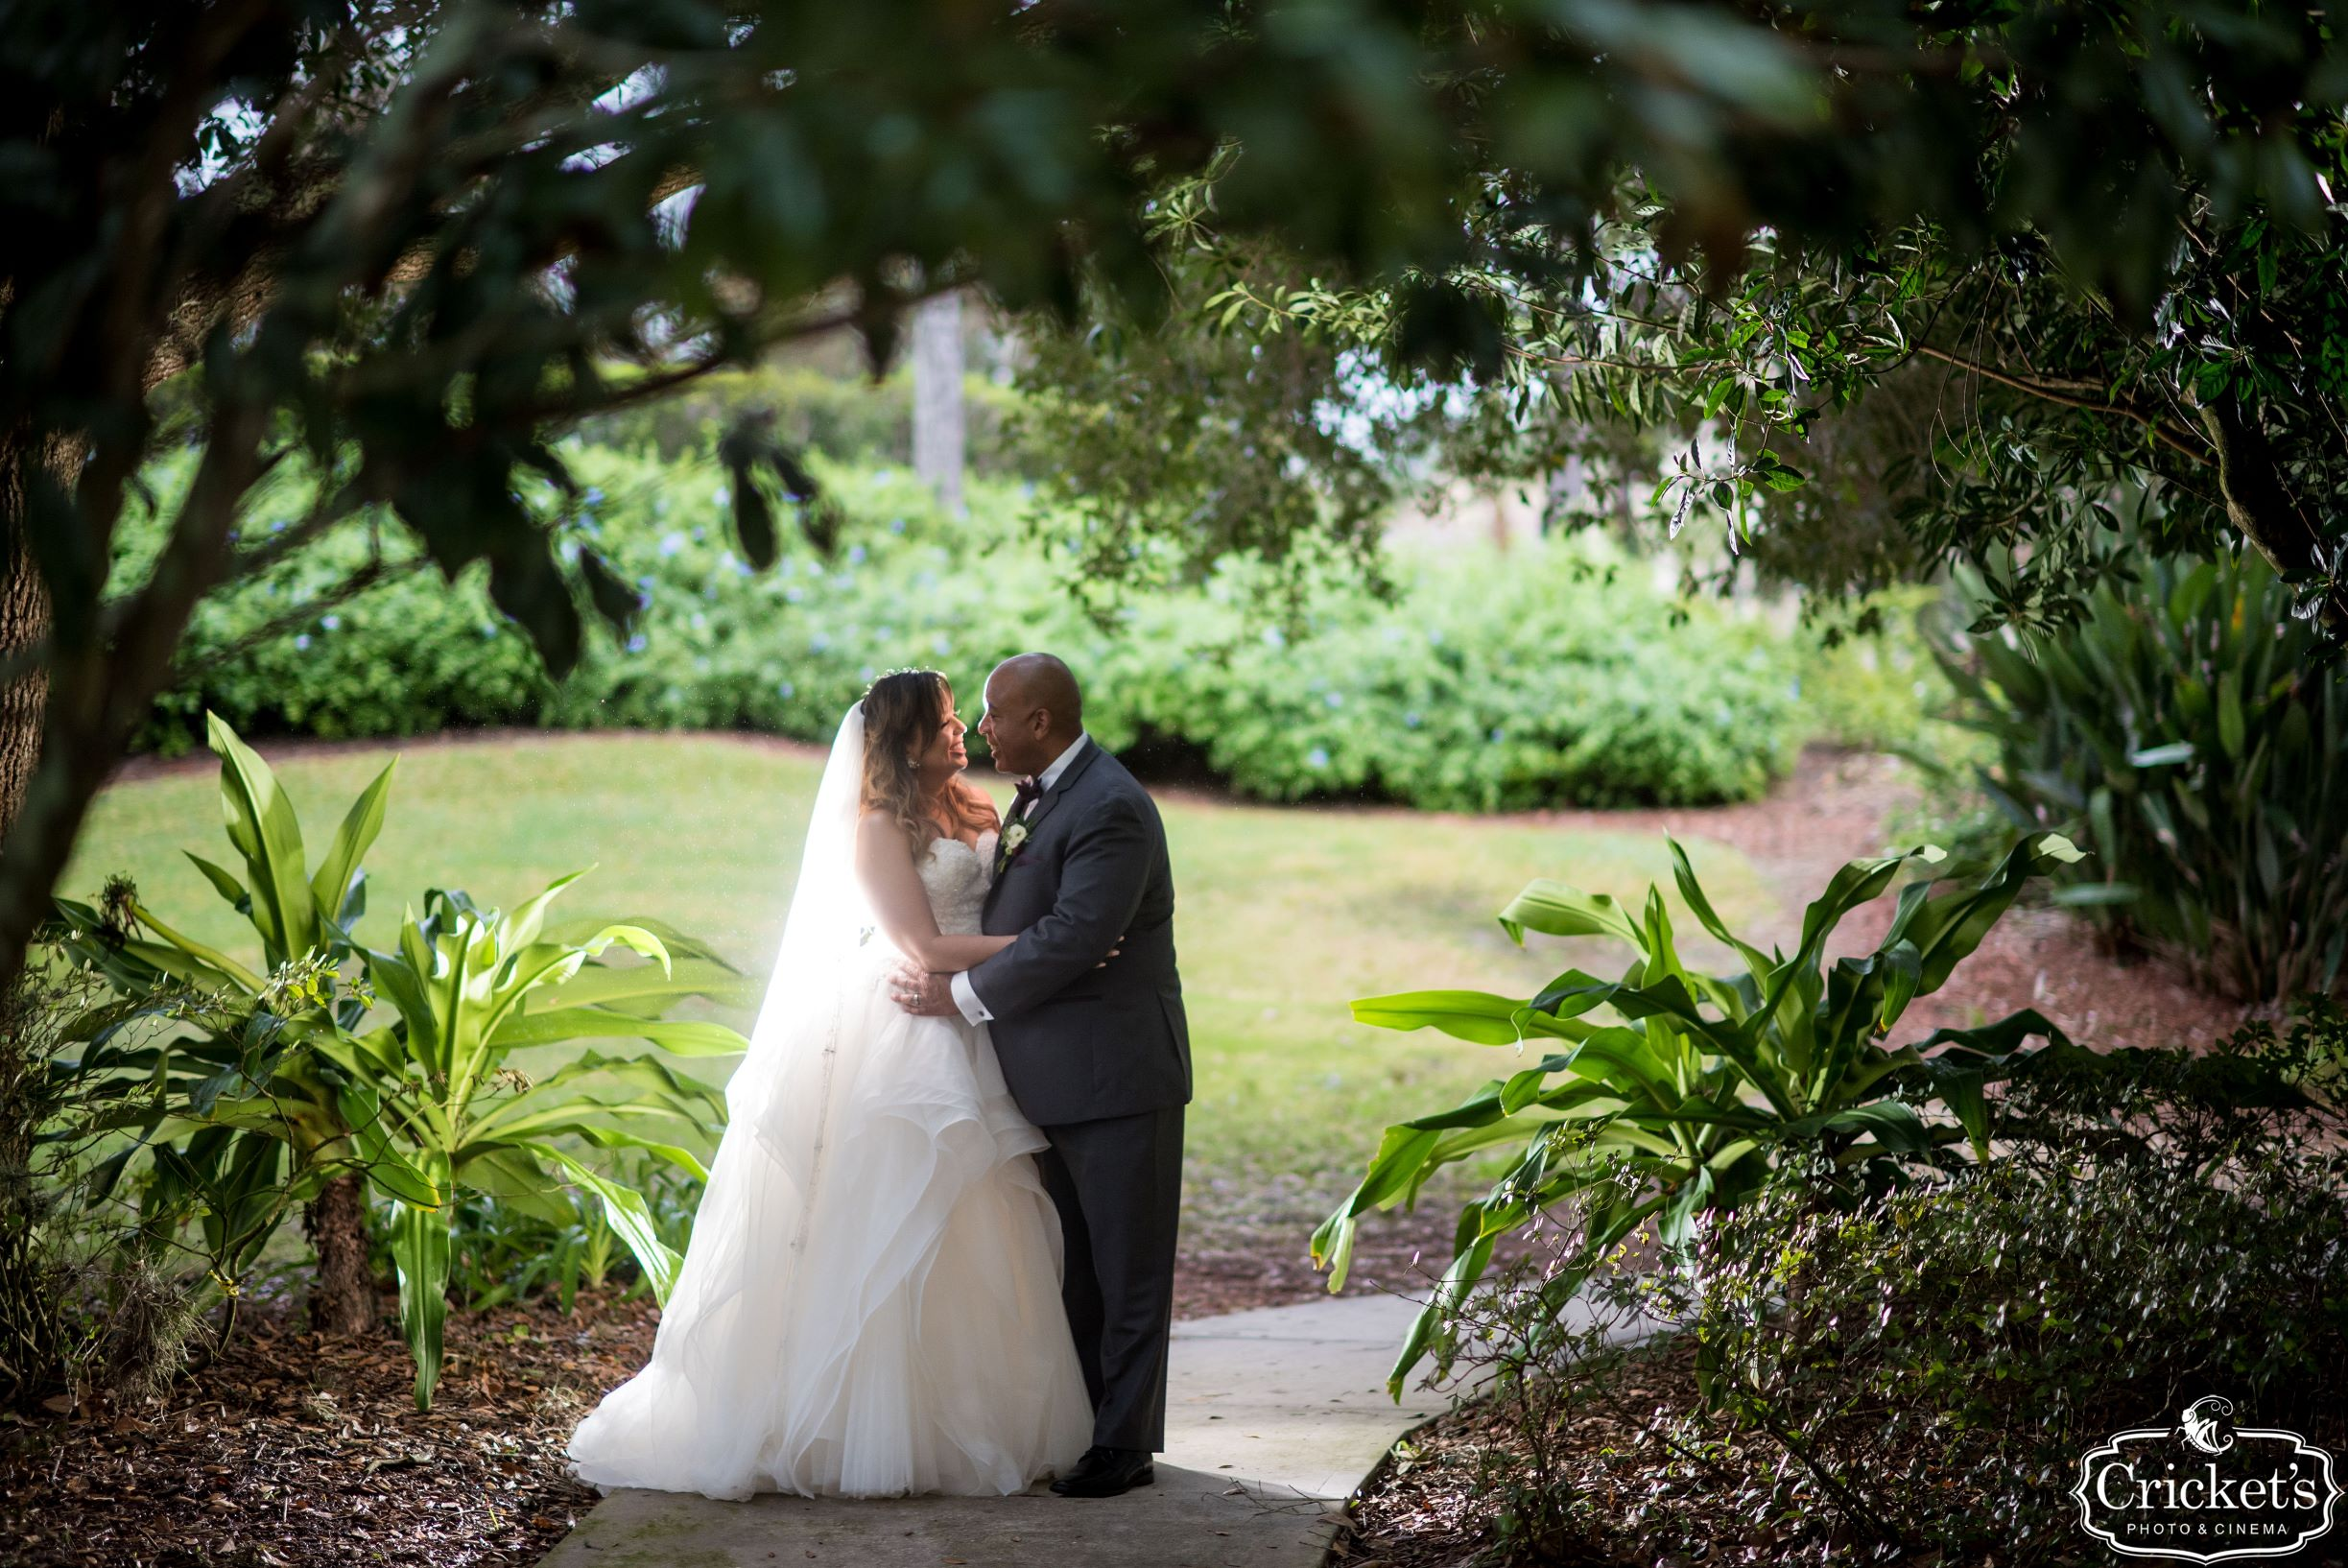 Romantic Wedding | Jessica and Henry at the Omni Orlando Resort